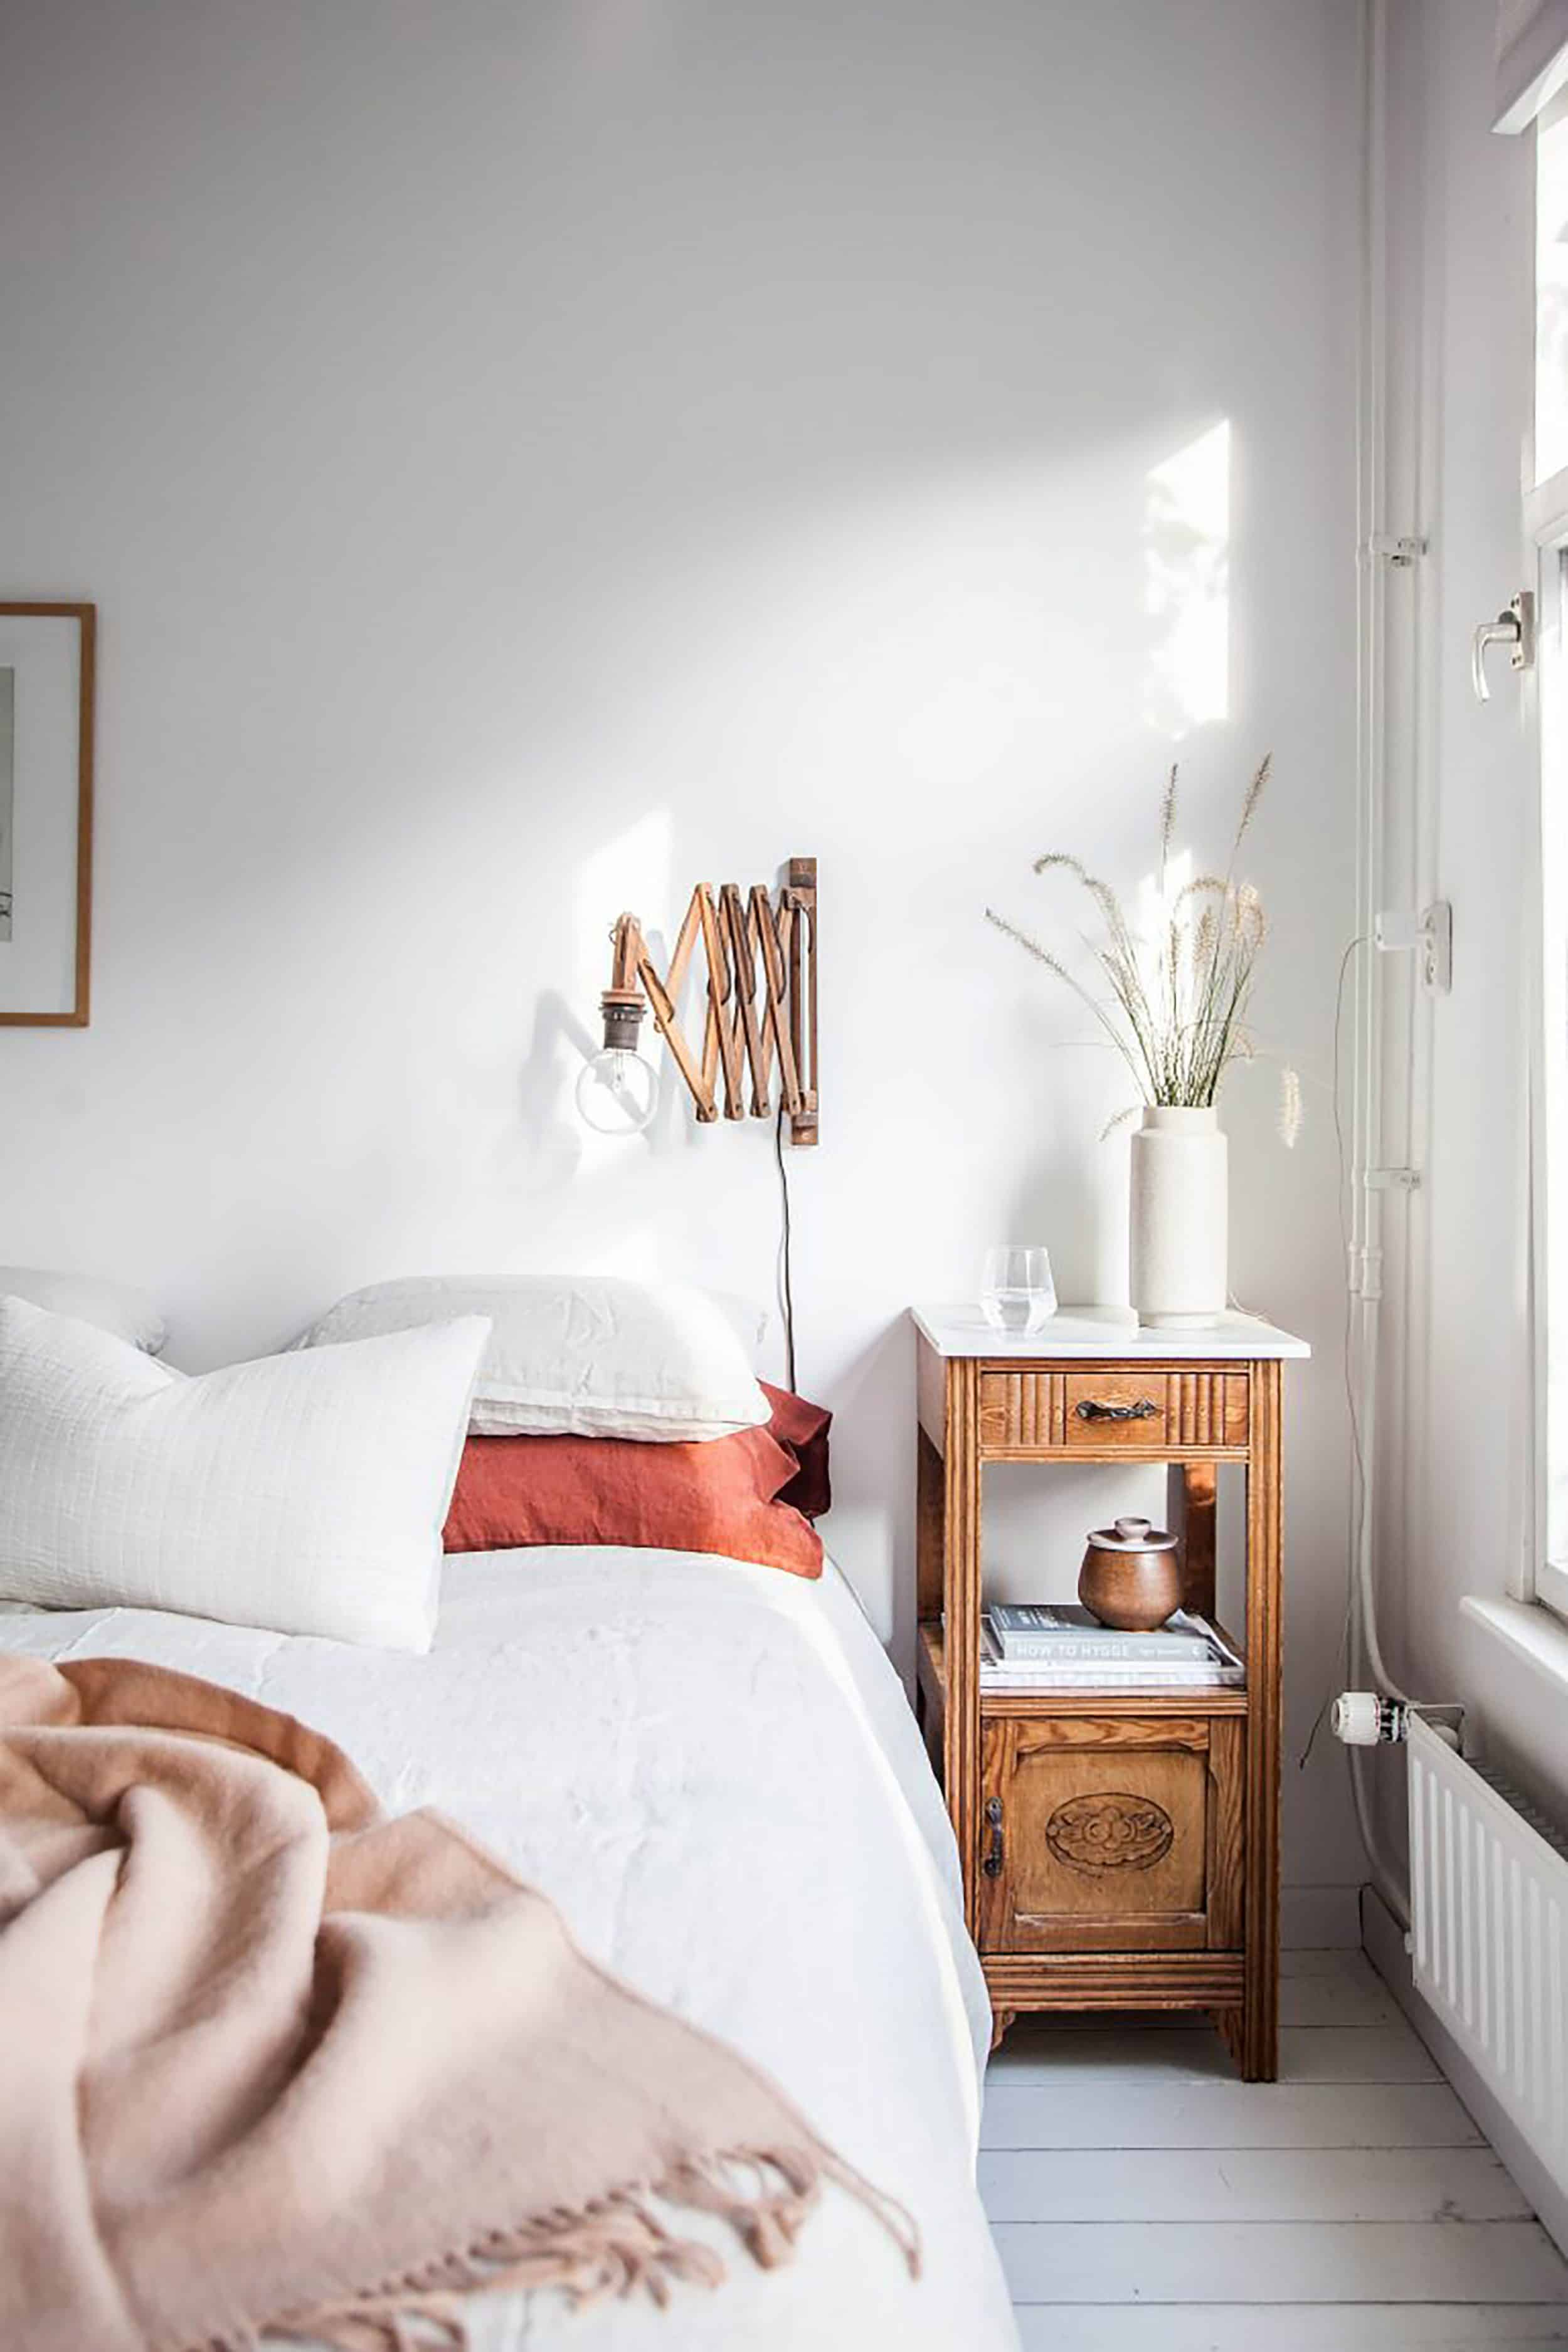 Traditional Minimal Bedroom With Wall Sconce